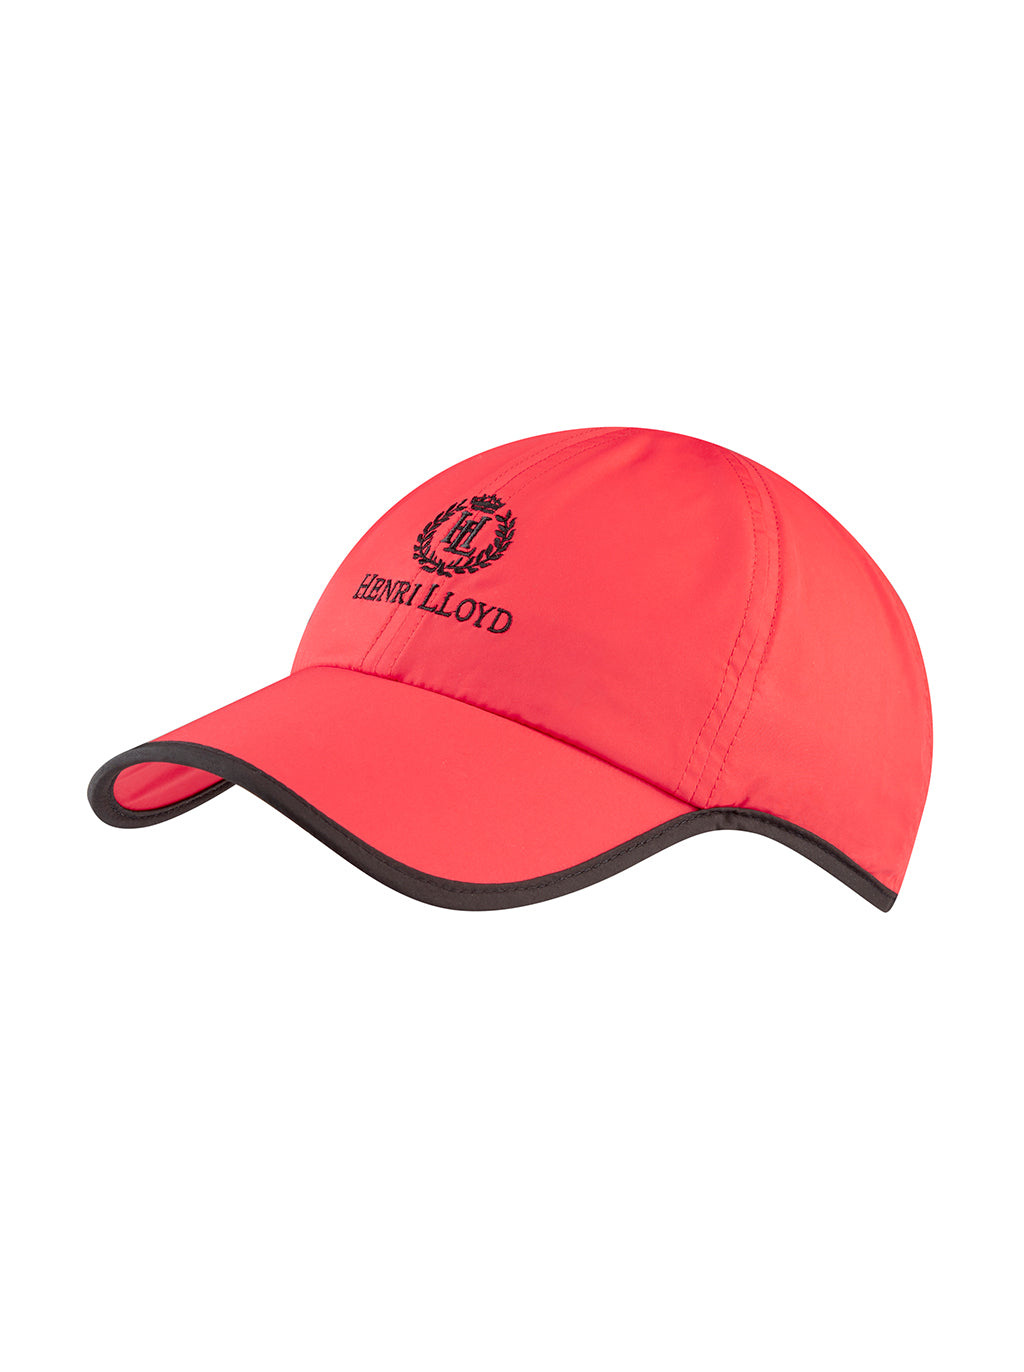 Henri Lloyd Breeze Cap RED - DISCONTINUED STYLE